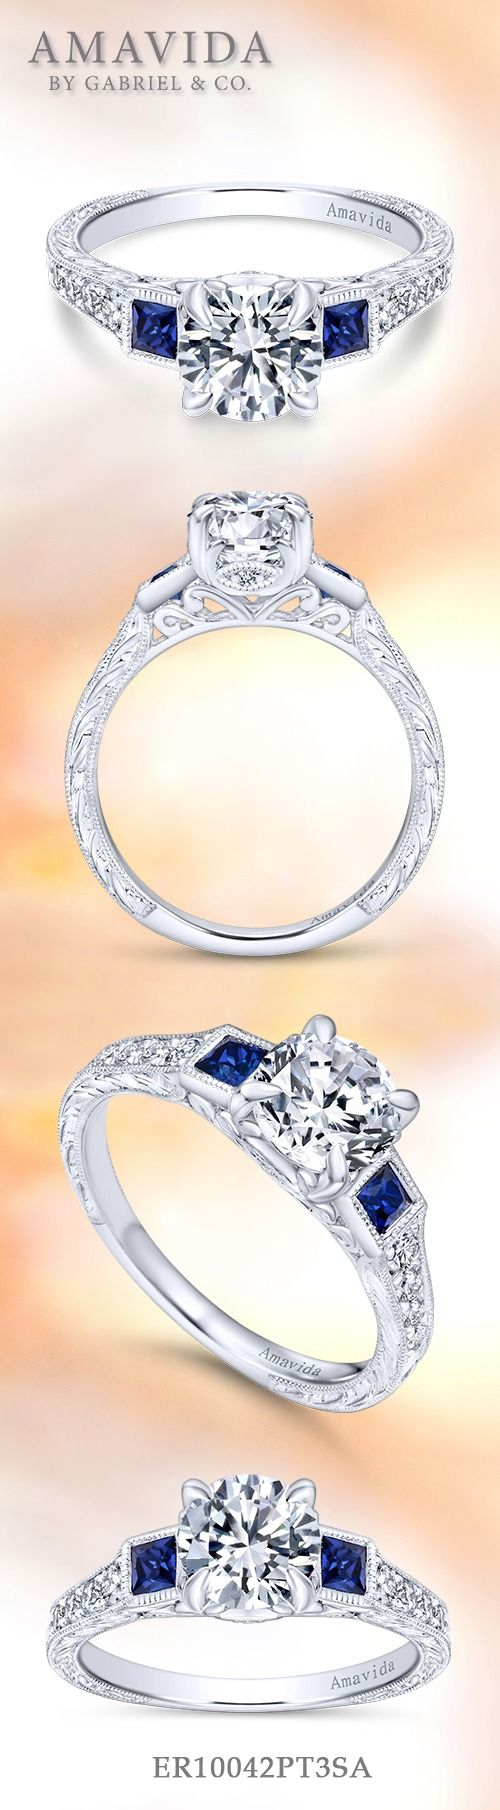 Gabriel & Co.-Voted #1 Most Preferred Fine Jewelry and Bridal Brand.  Glamorous Platinum Round 3 Stones Engagement Ring. Sparkles with a pair of sapphire side stones and a pave diamond band.